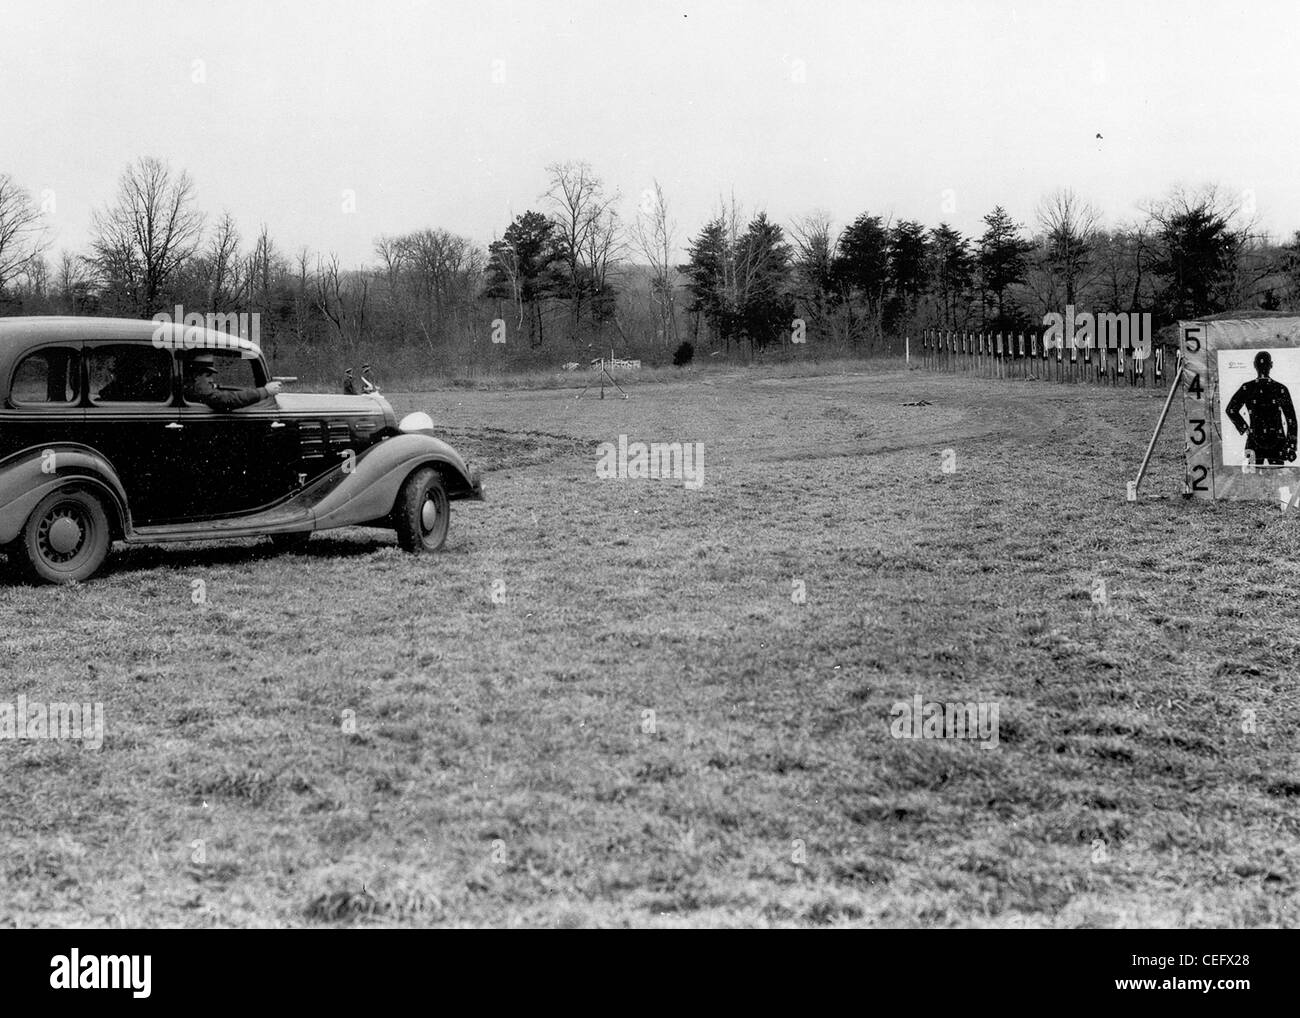 Special agent target practice, 1930s - Stock Image